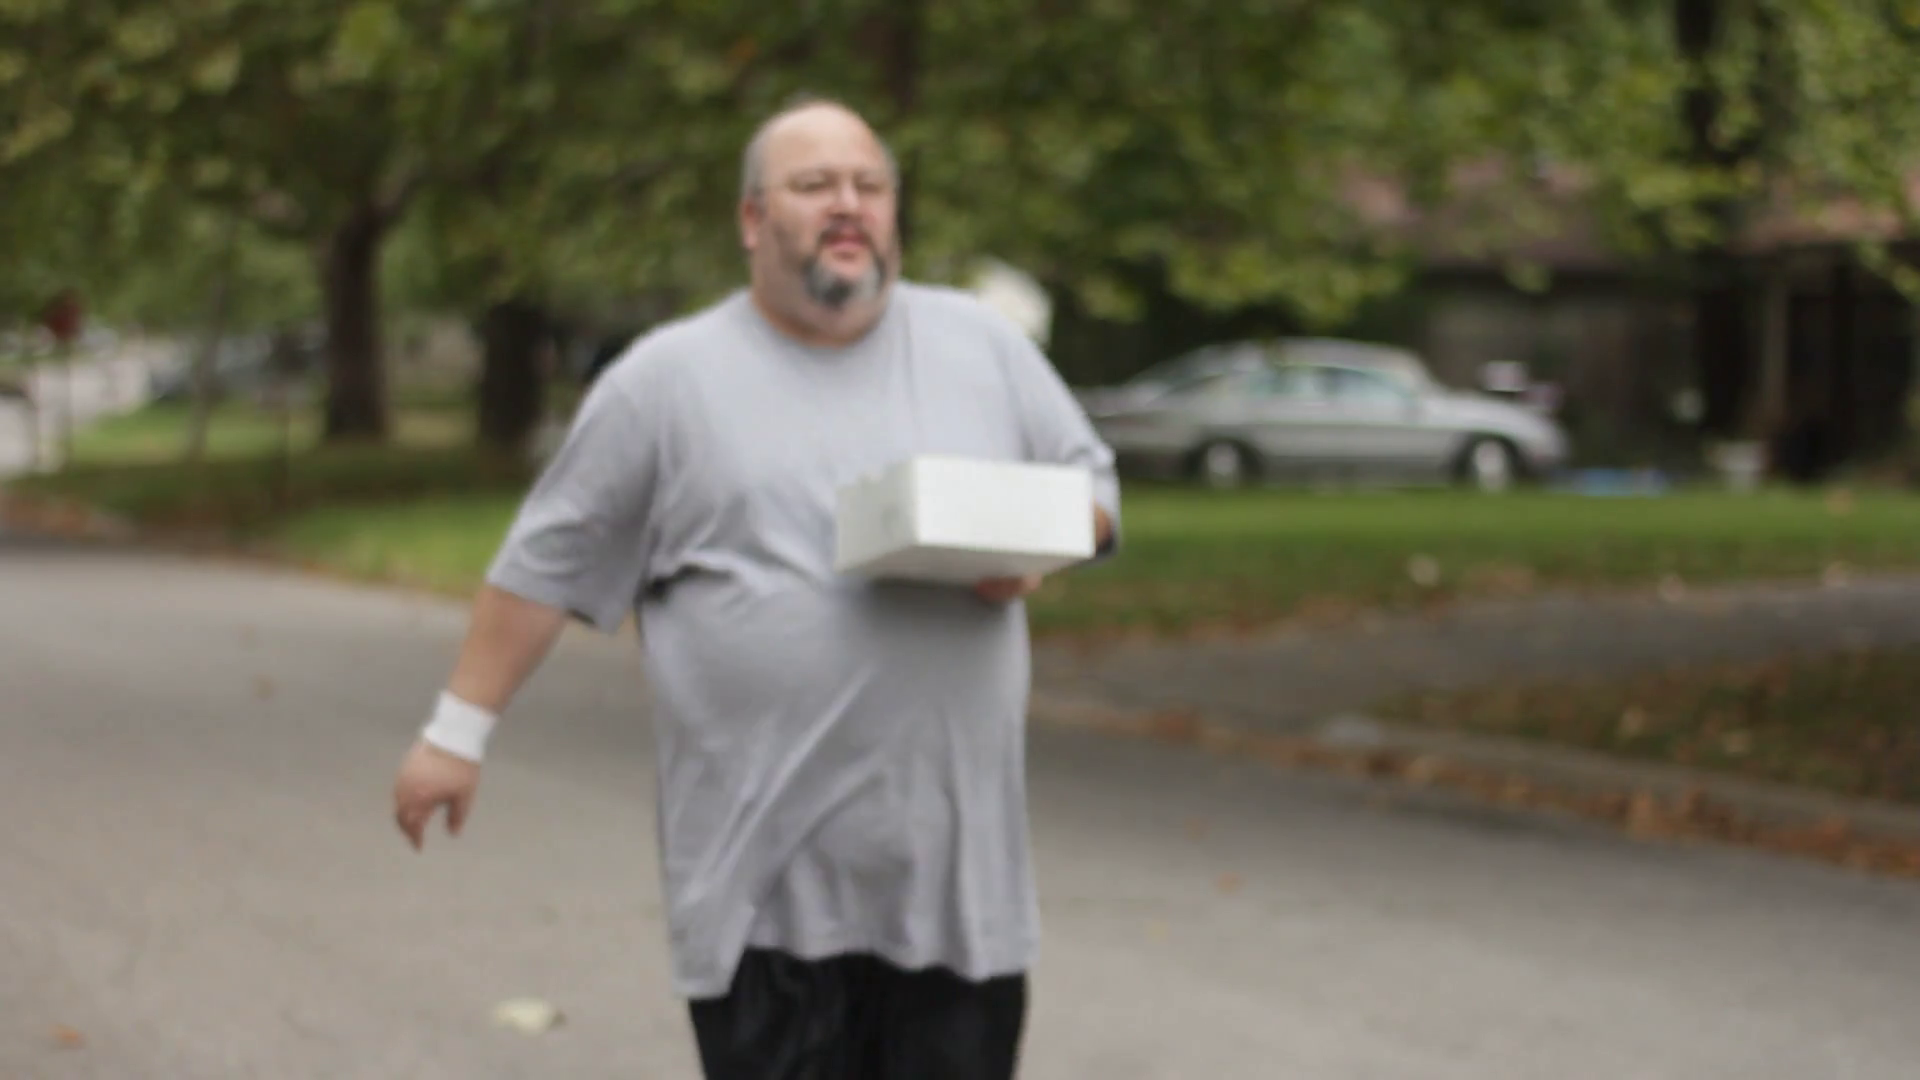 Fat Guy Walking with Donuts Stock Video Footage - Videoblocks